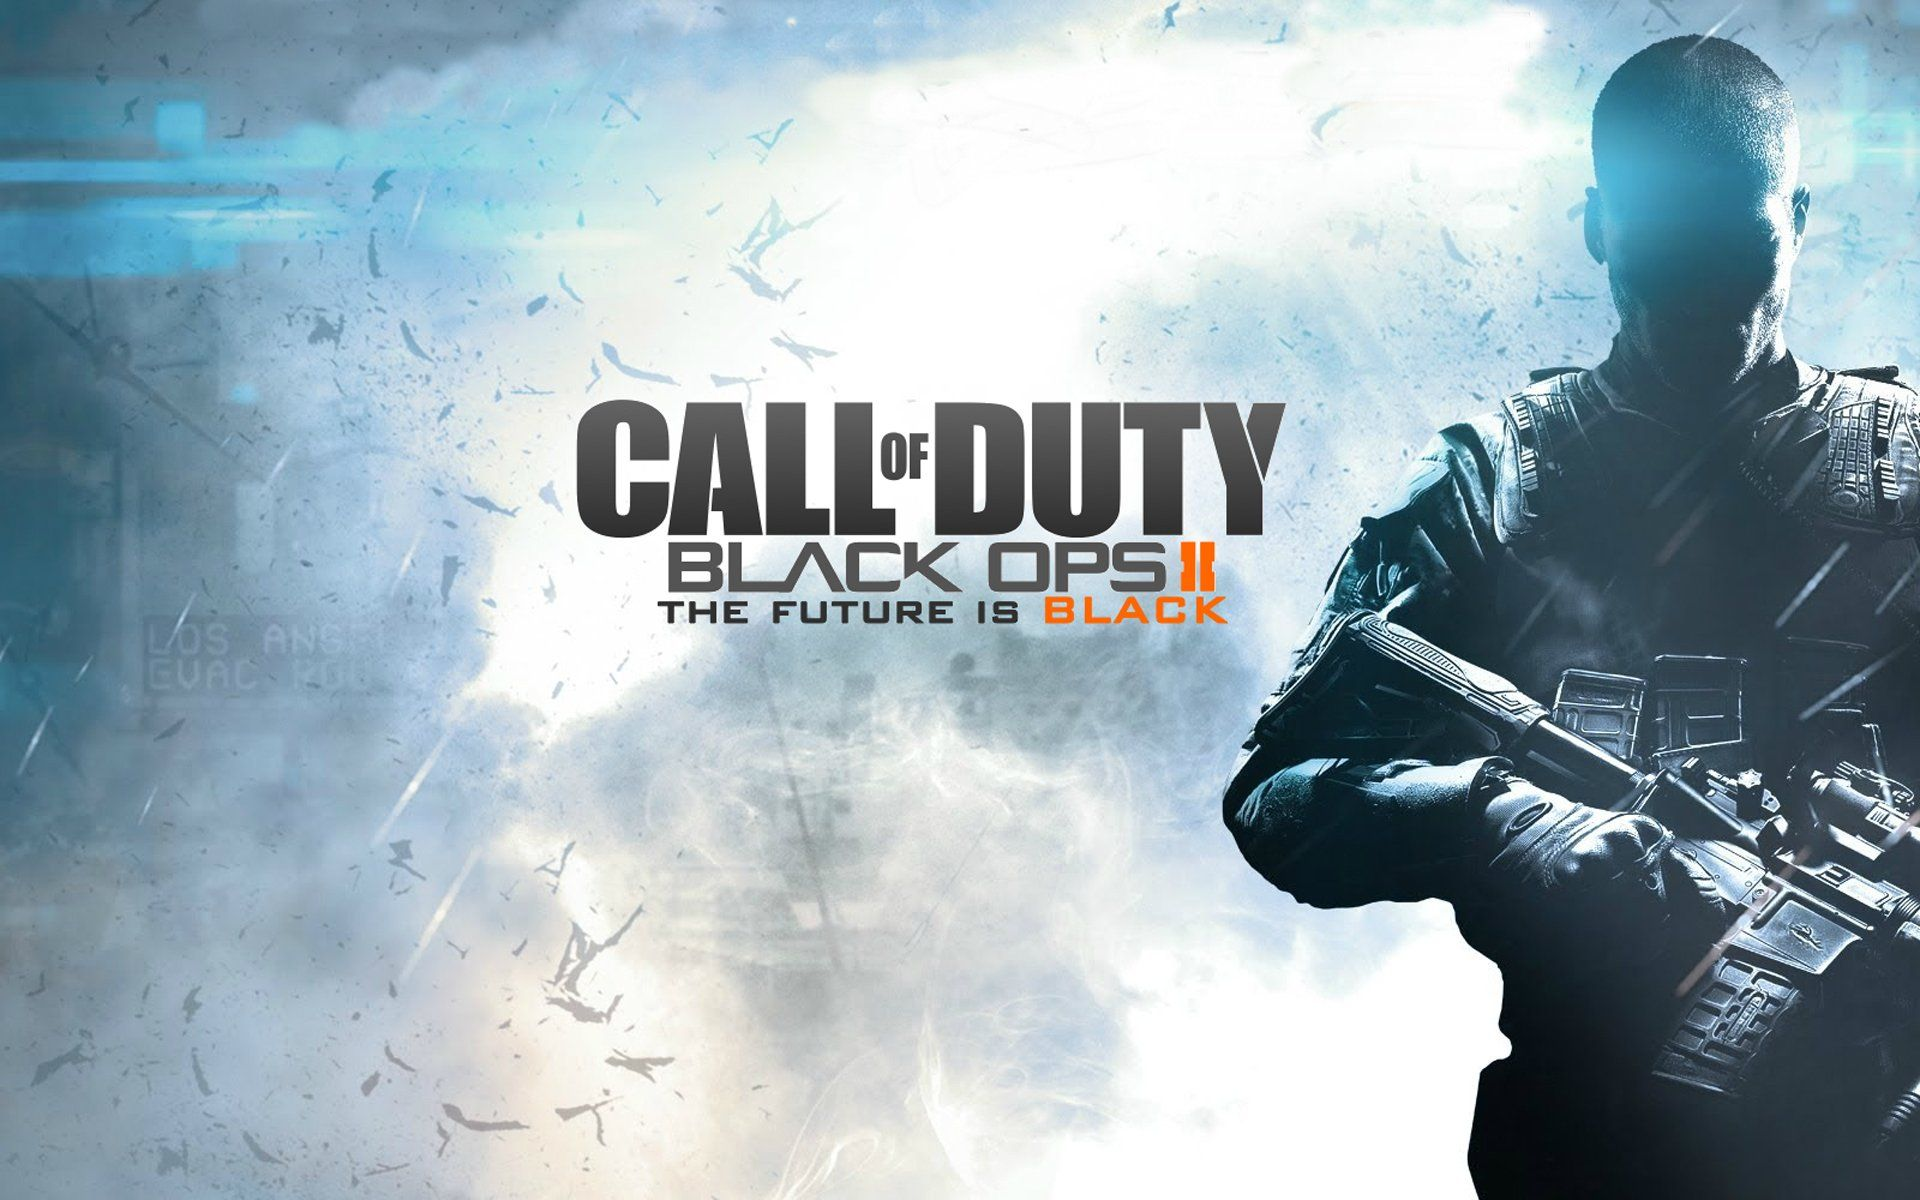 Call Of Duty The Ghost 1280x720 Wallpaper Ecopetit Cat